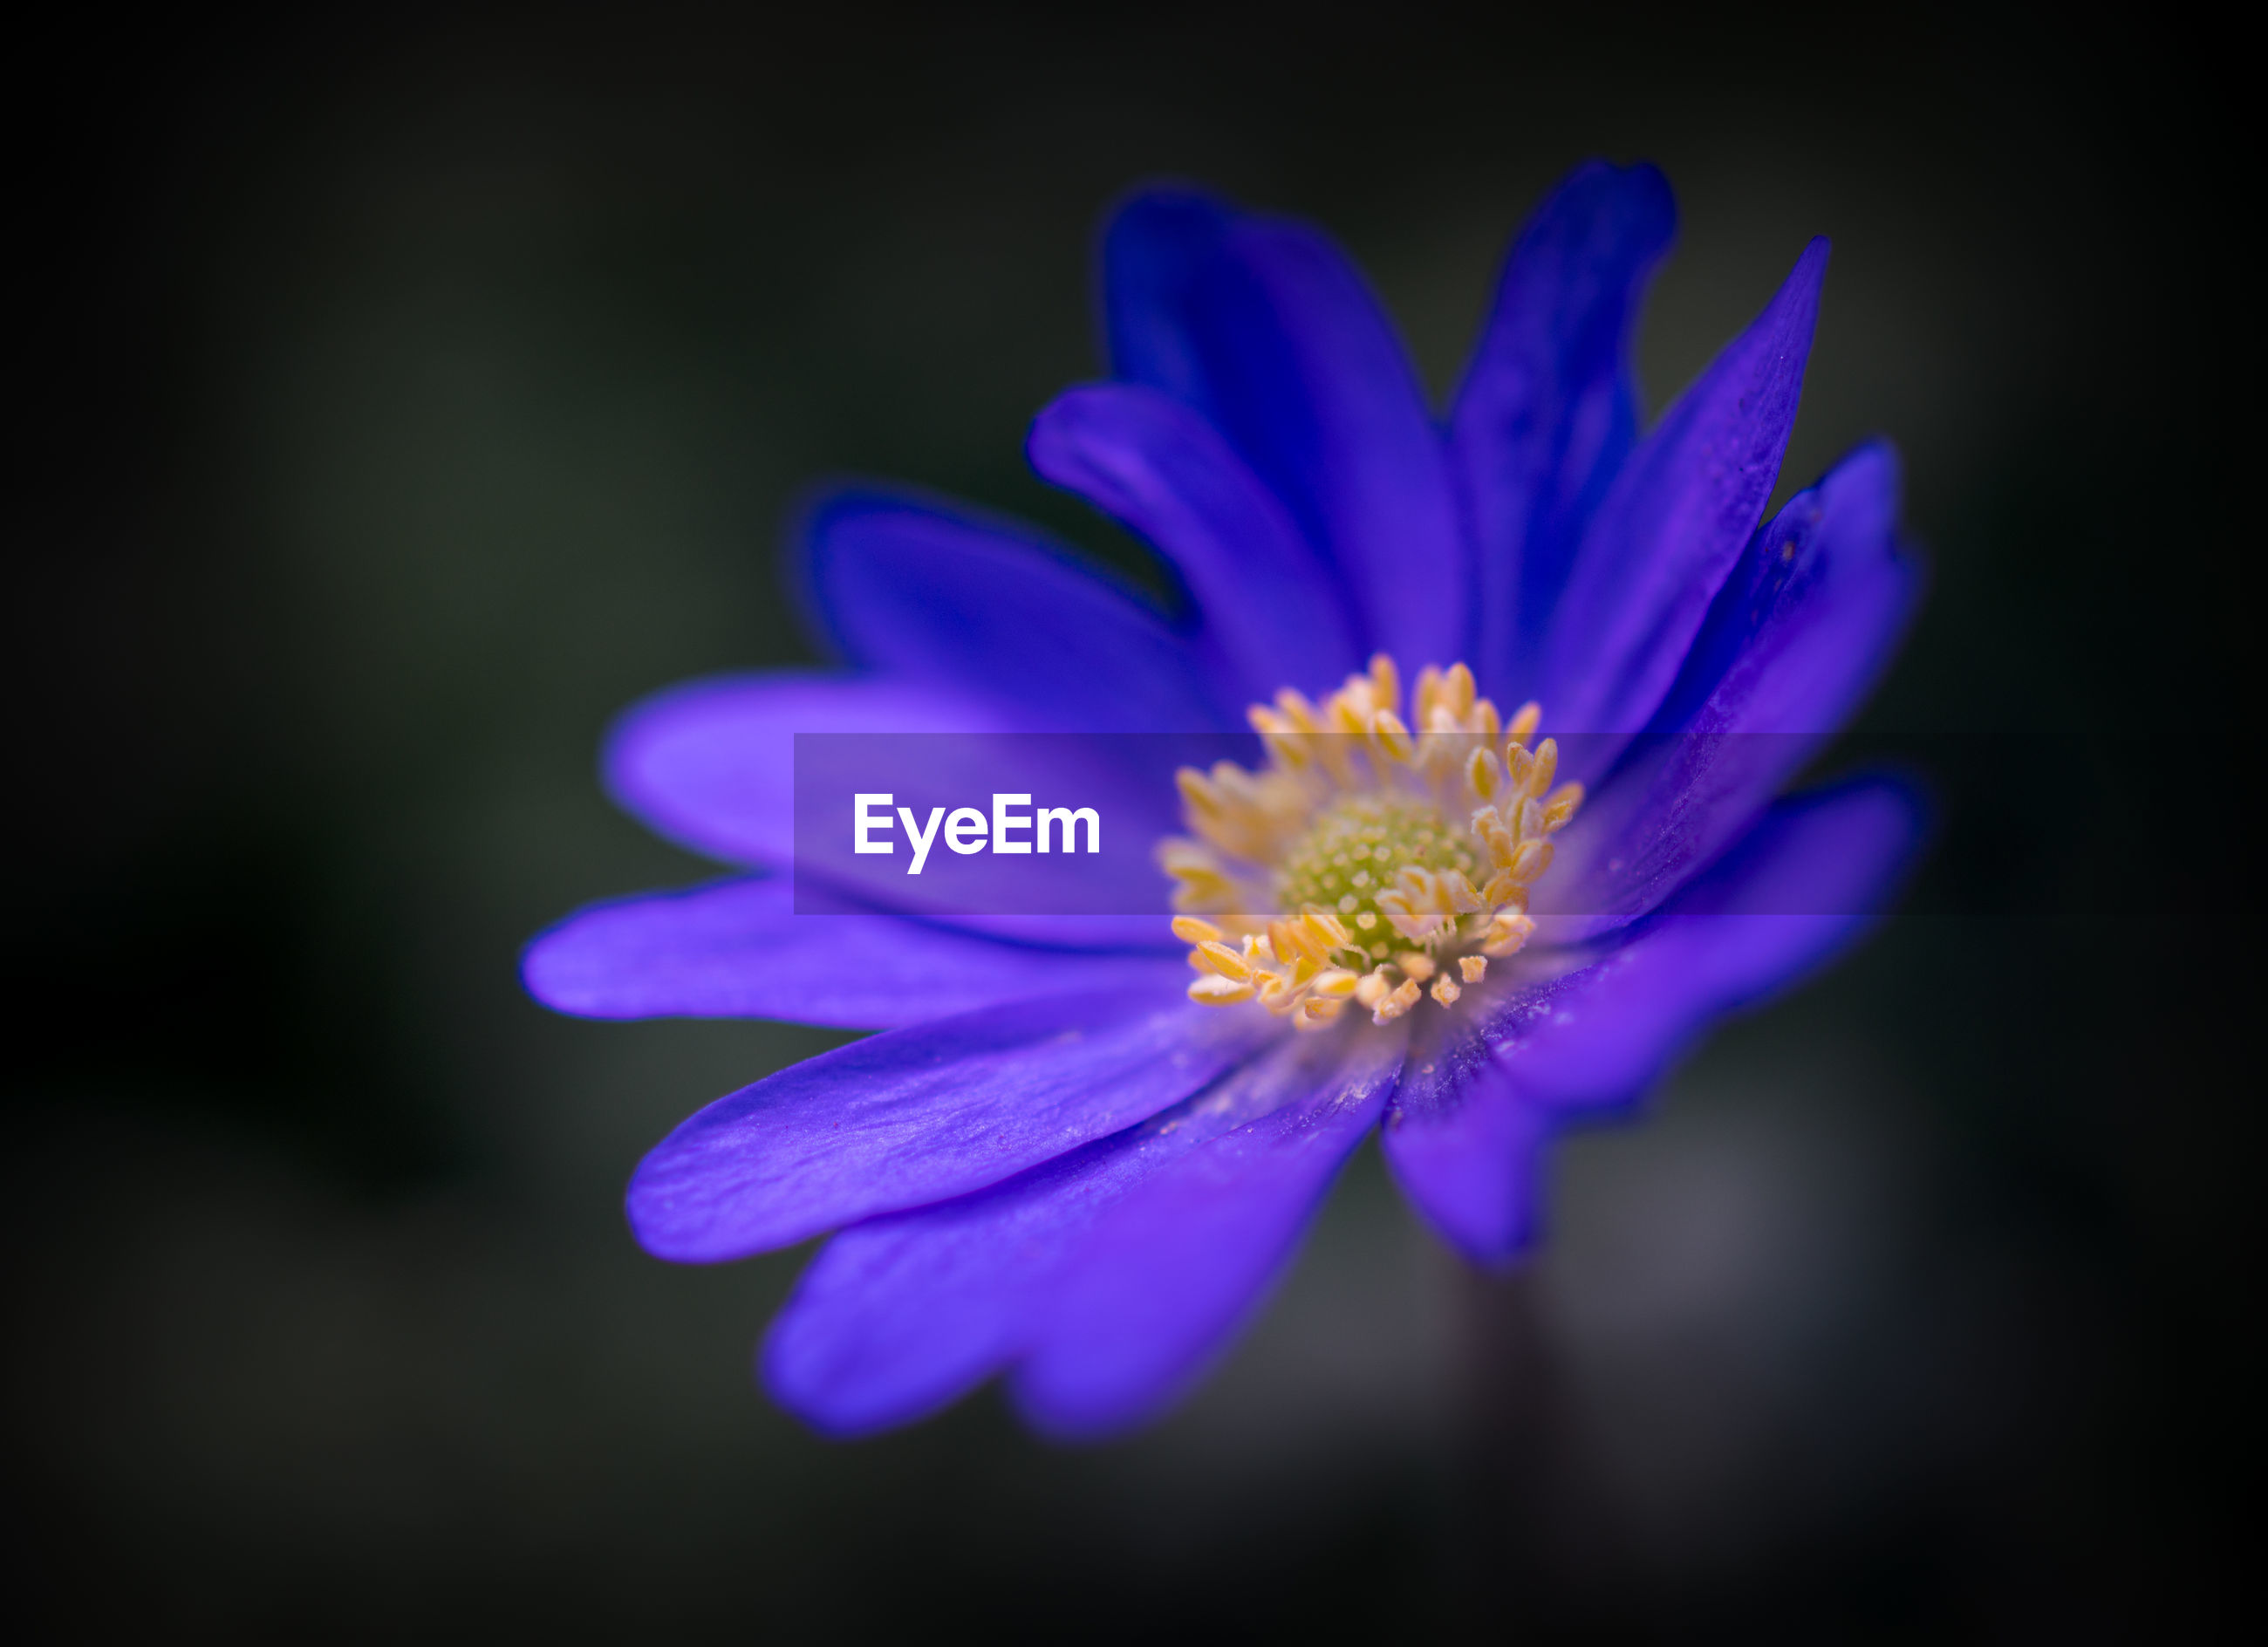 CLOSE-UP OF BLUE FLOWER BLOOMING